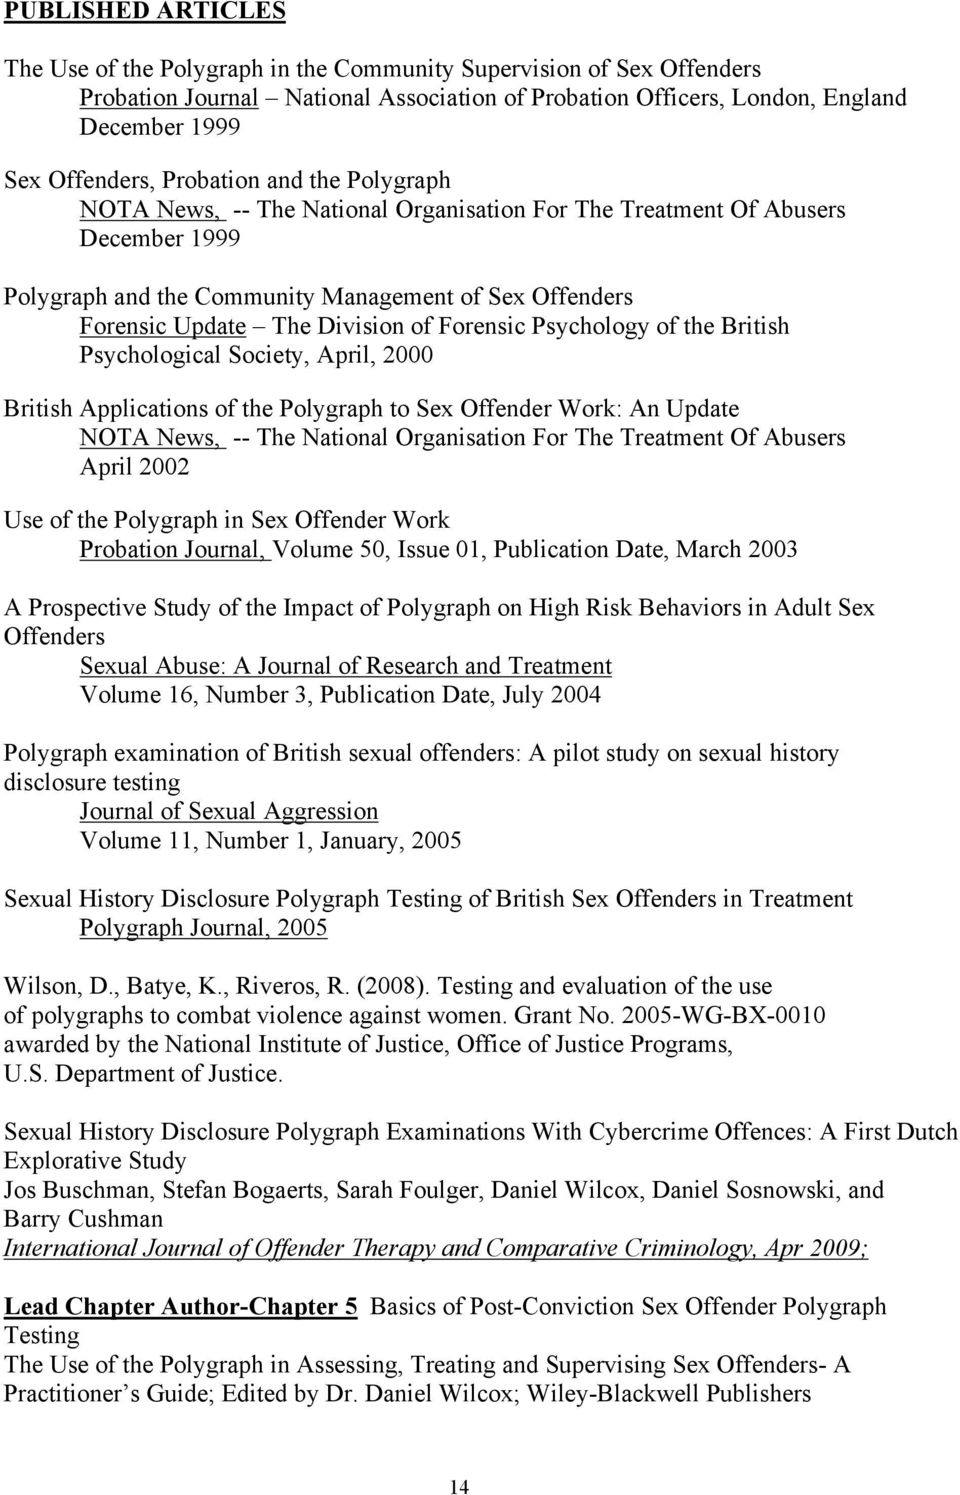 Forensic Psychology of the British Psychological Society, April, 2000 British Applications of the Polygraph to Sex Offender Work: An Update NOTA News, -- The National Organisation For The Treatment